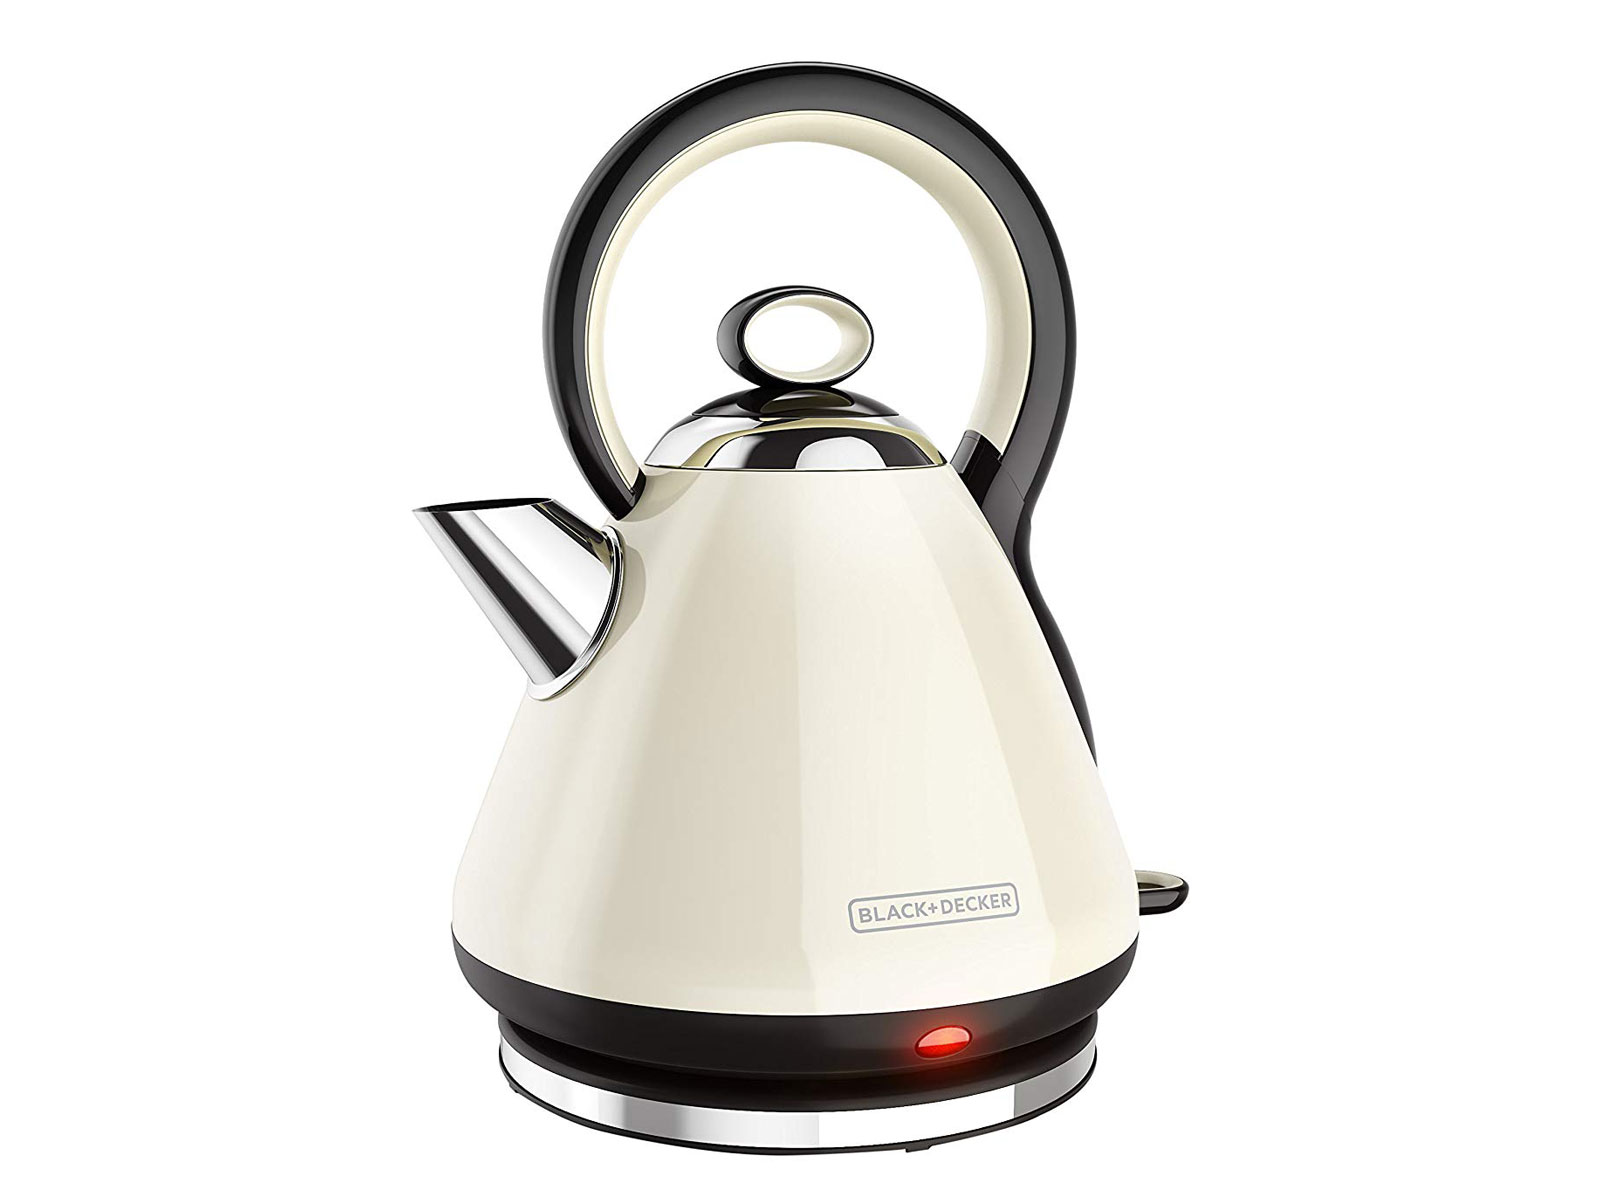 Black and Decker Electric Kettle